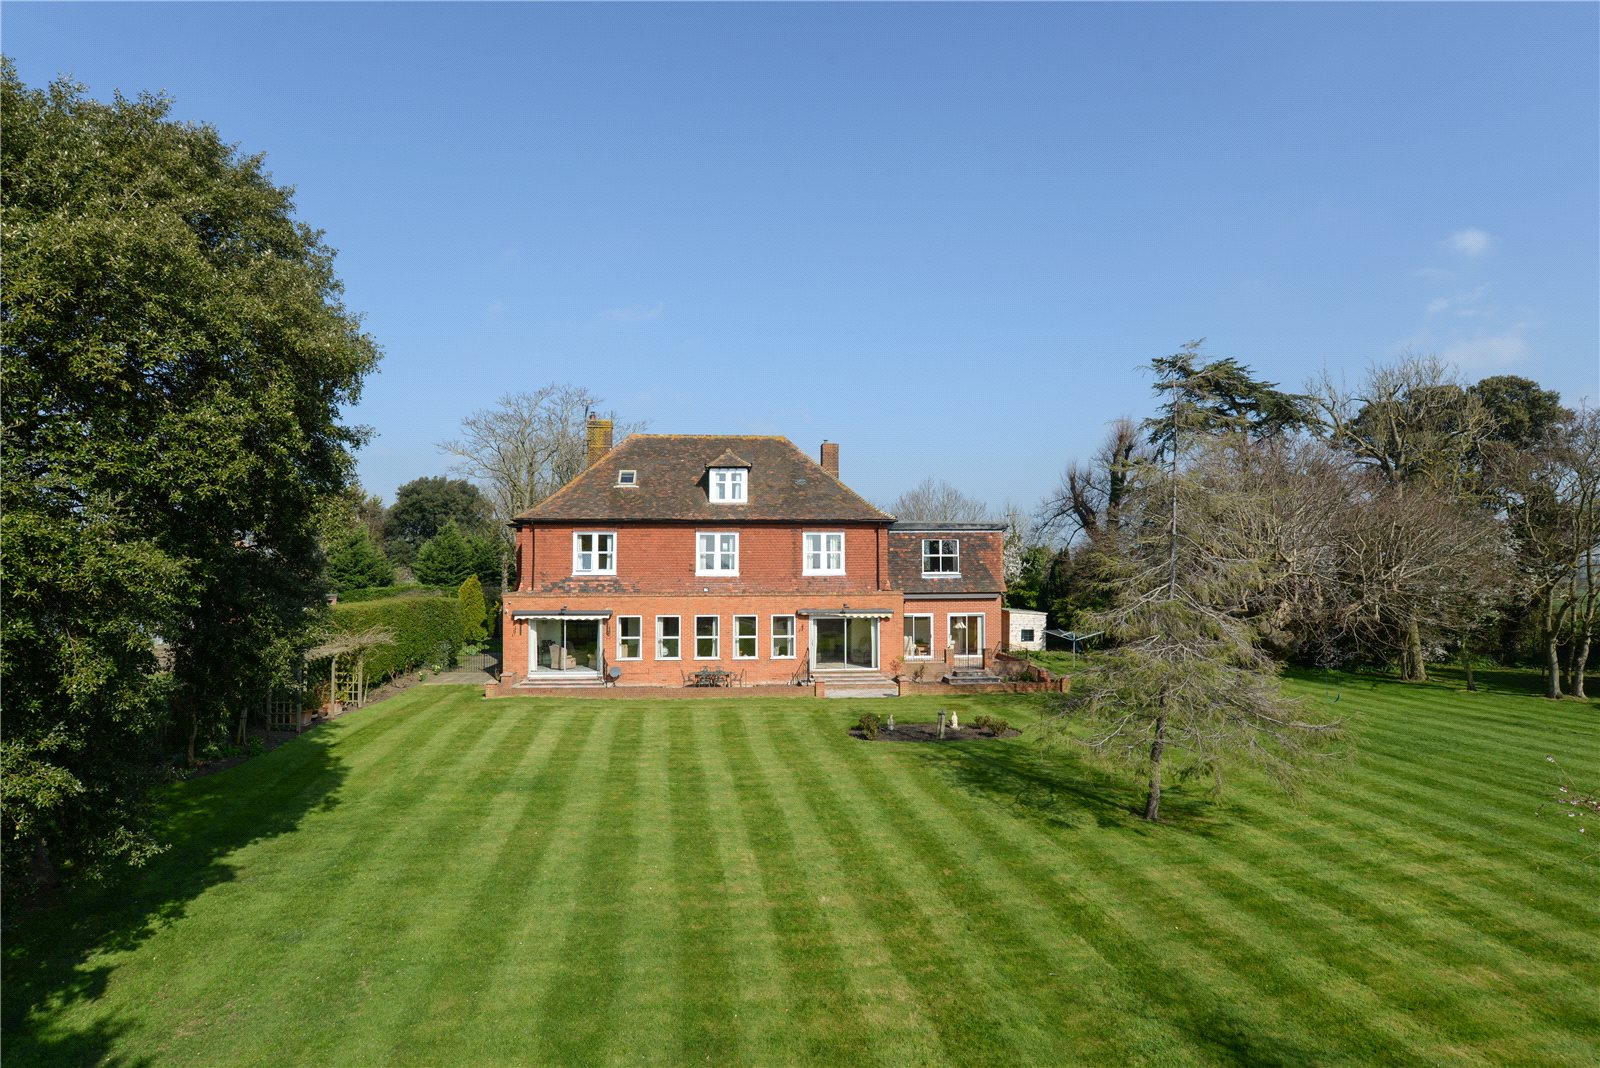 Single Family Home for Sale at Sandpit Hill, Chislet, Canterbury, Kent, CT3 Canterbury, England